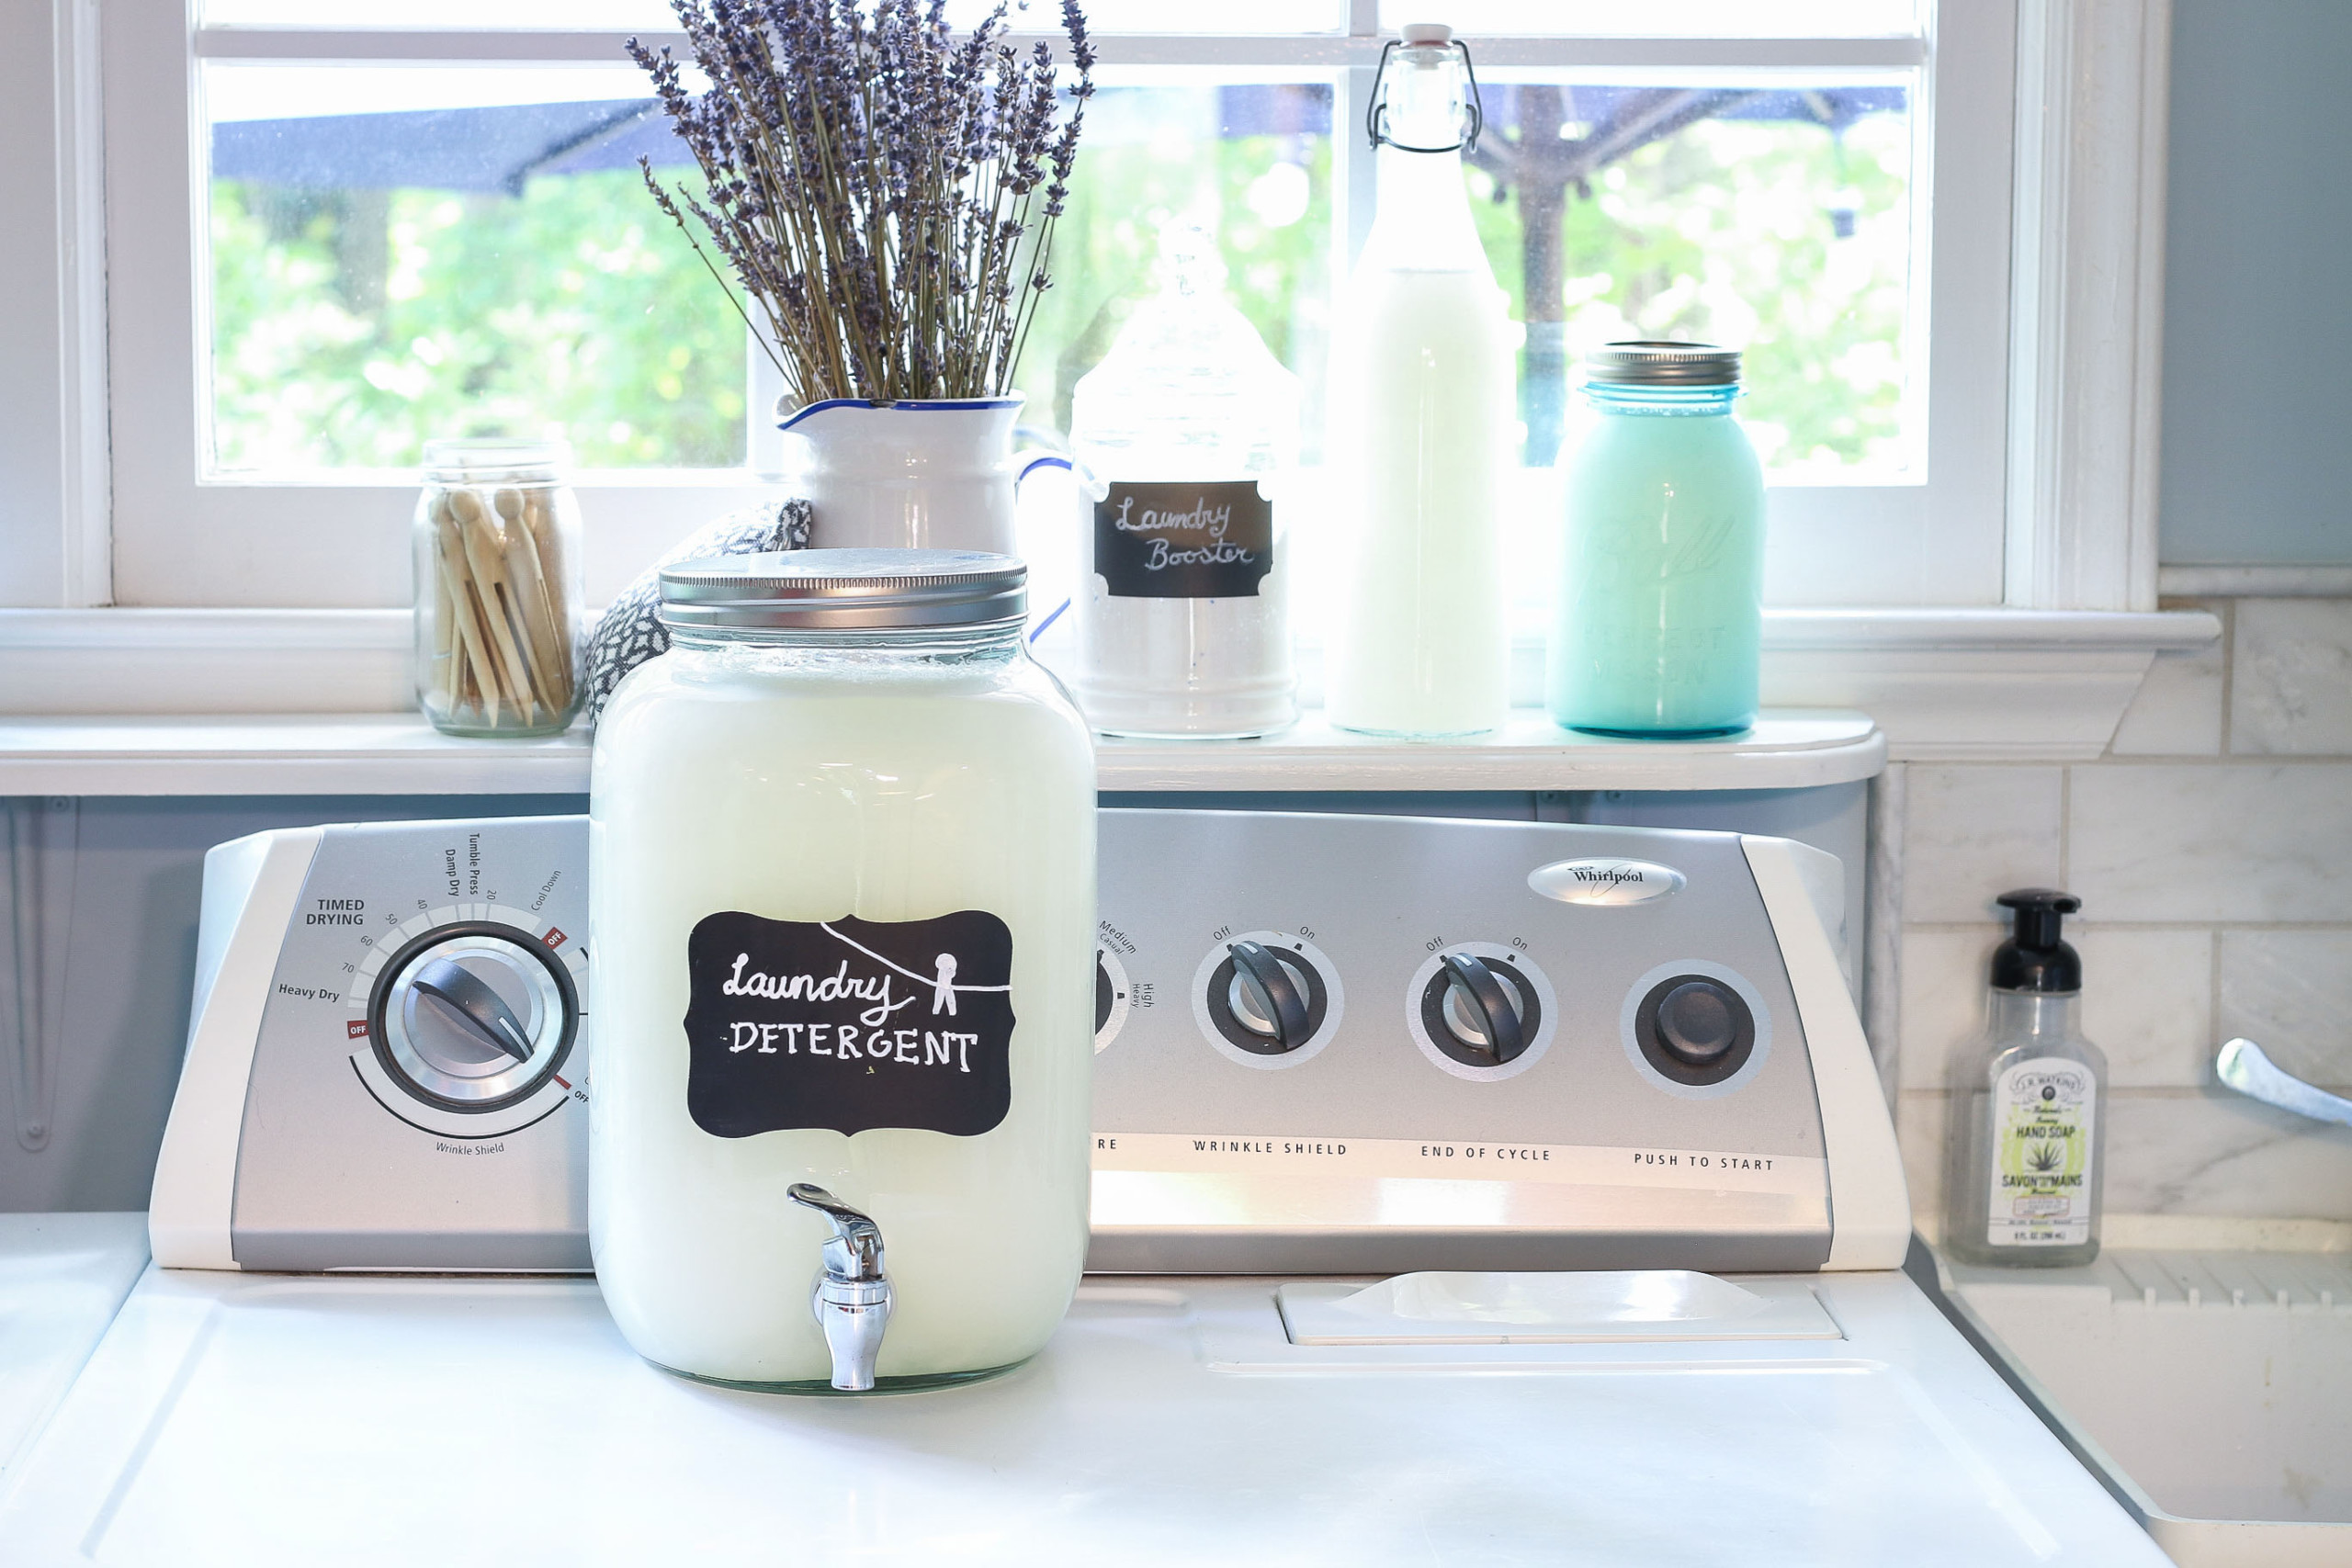 Make Your Own Laundry Detergent for Only $1.25 per year